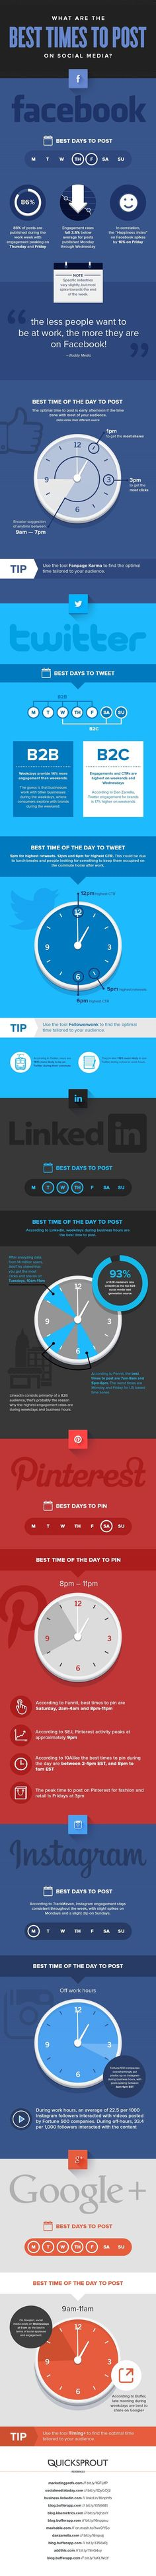 Wat zijn de beste tijden om te posten op Social Media? / What are the beste times to post on Social Media? [Infographic]